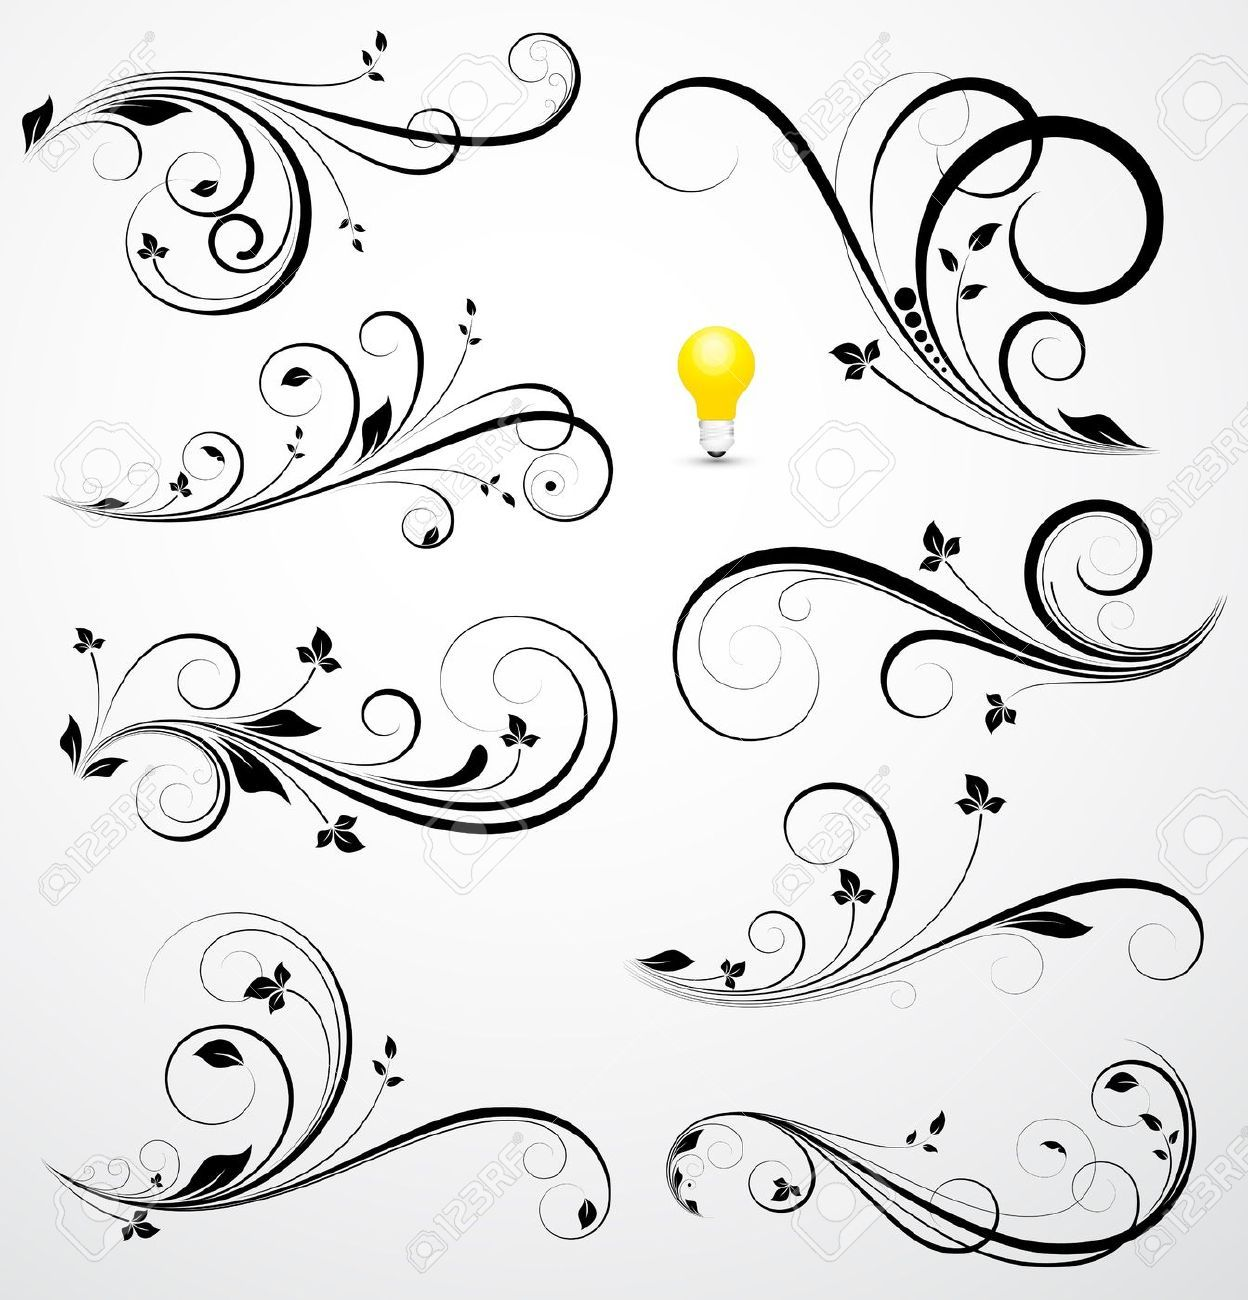 Swirl flower border google search living room wall for Swirl tattoo designs